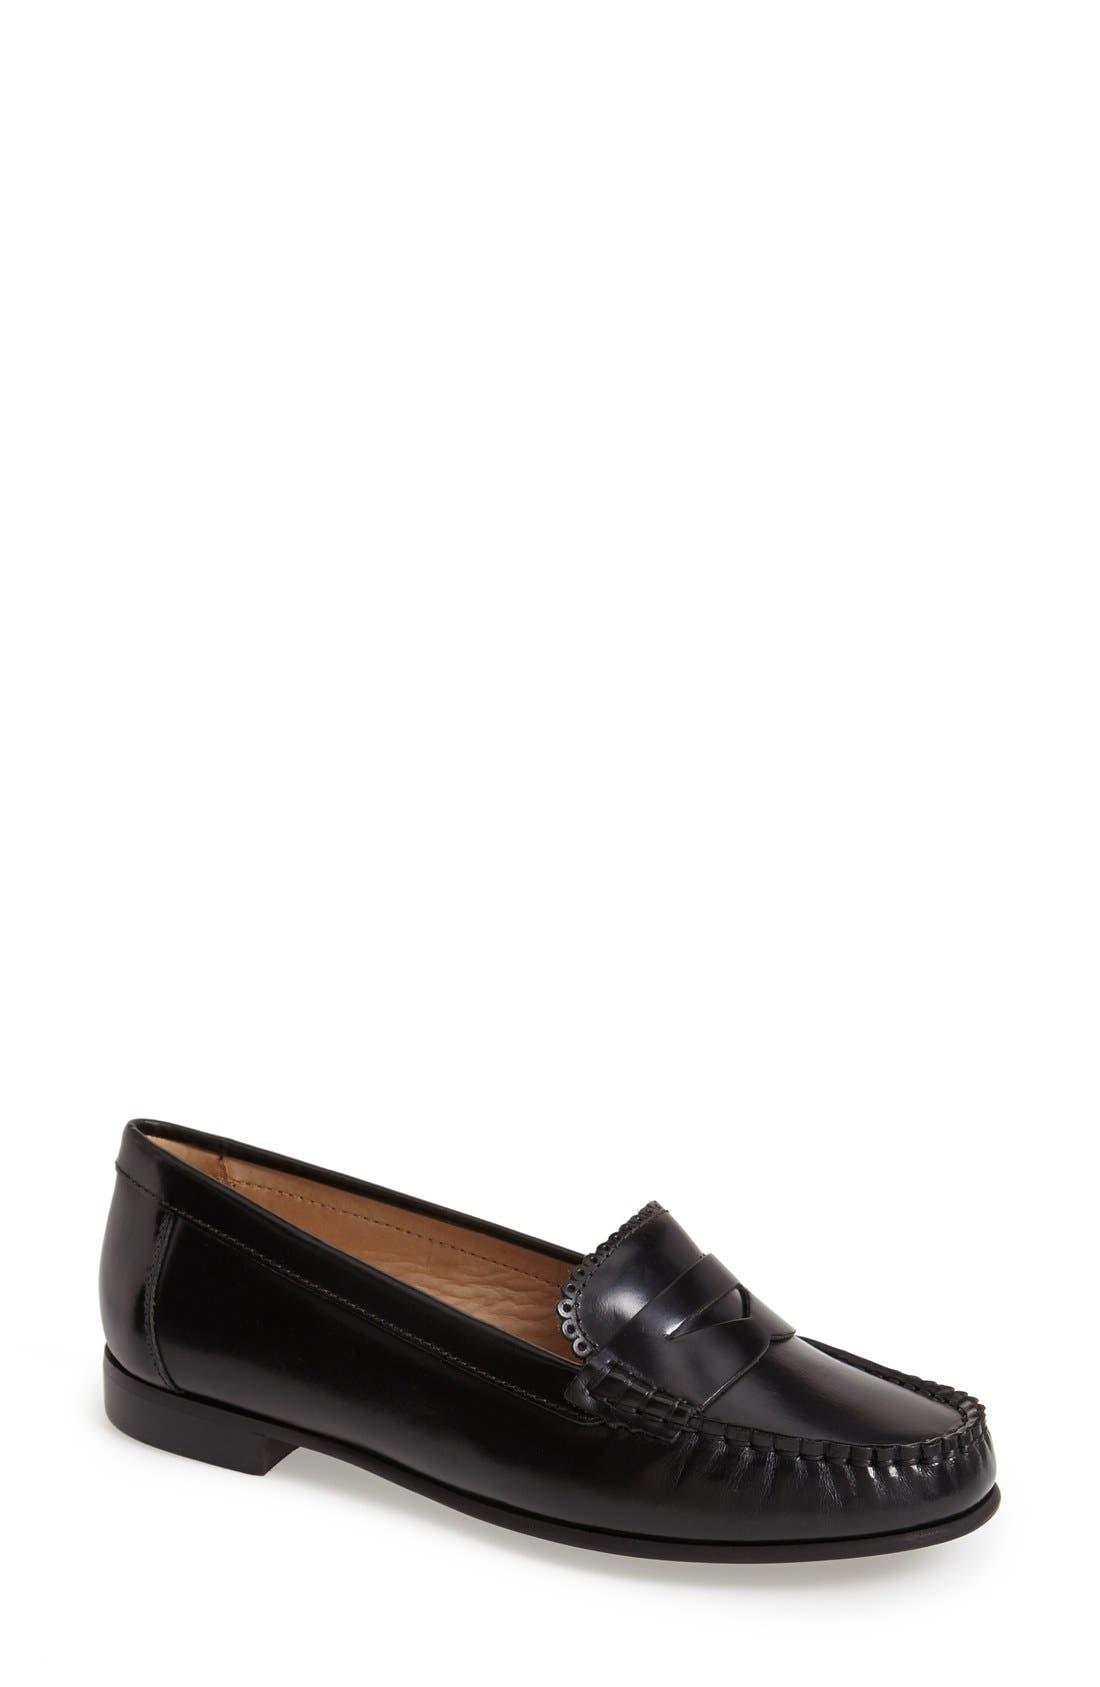 'Quinn' Leather Loafer,                         Main,                         color,